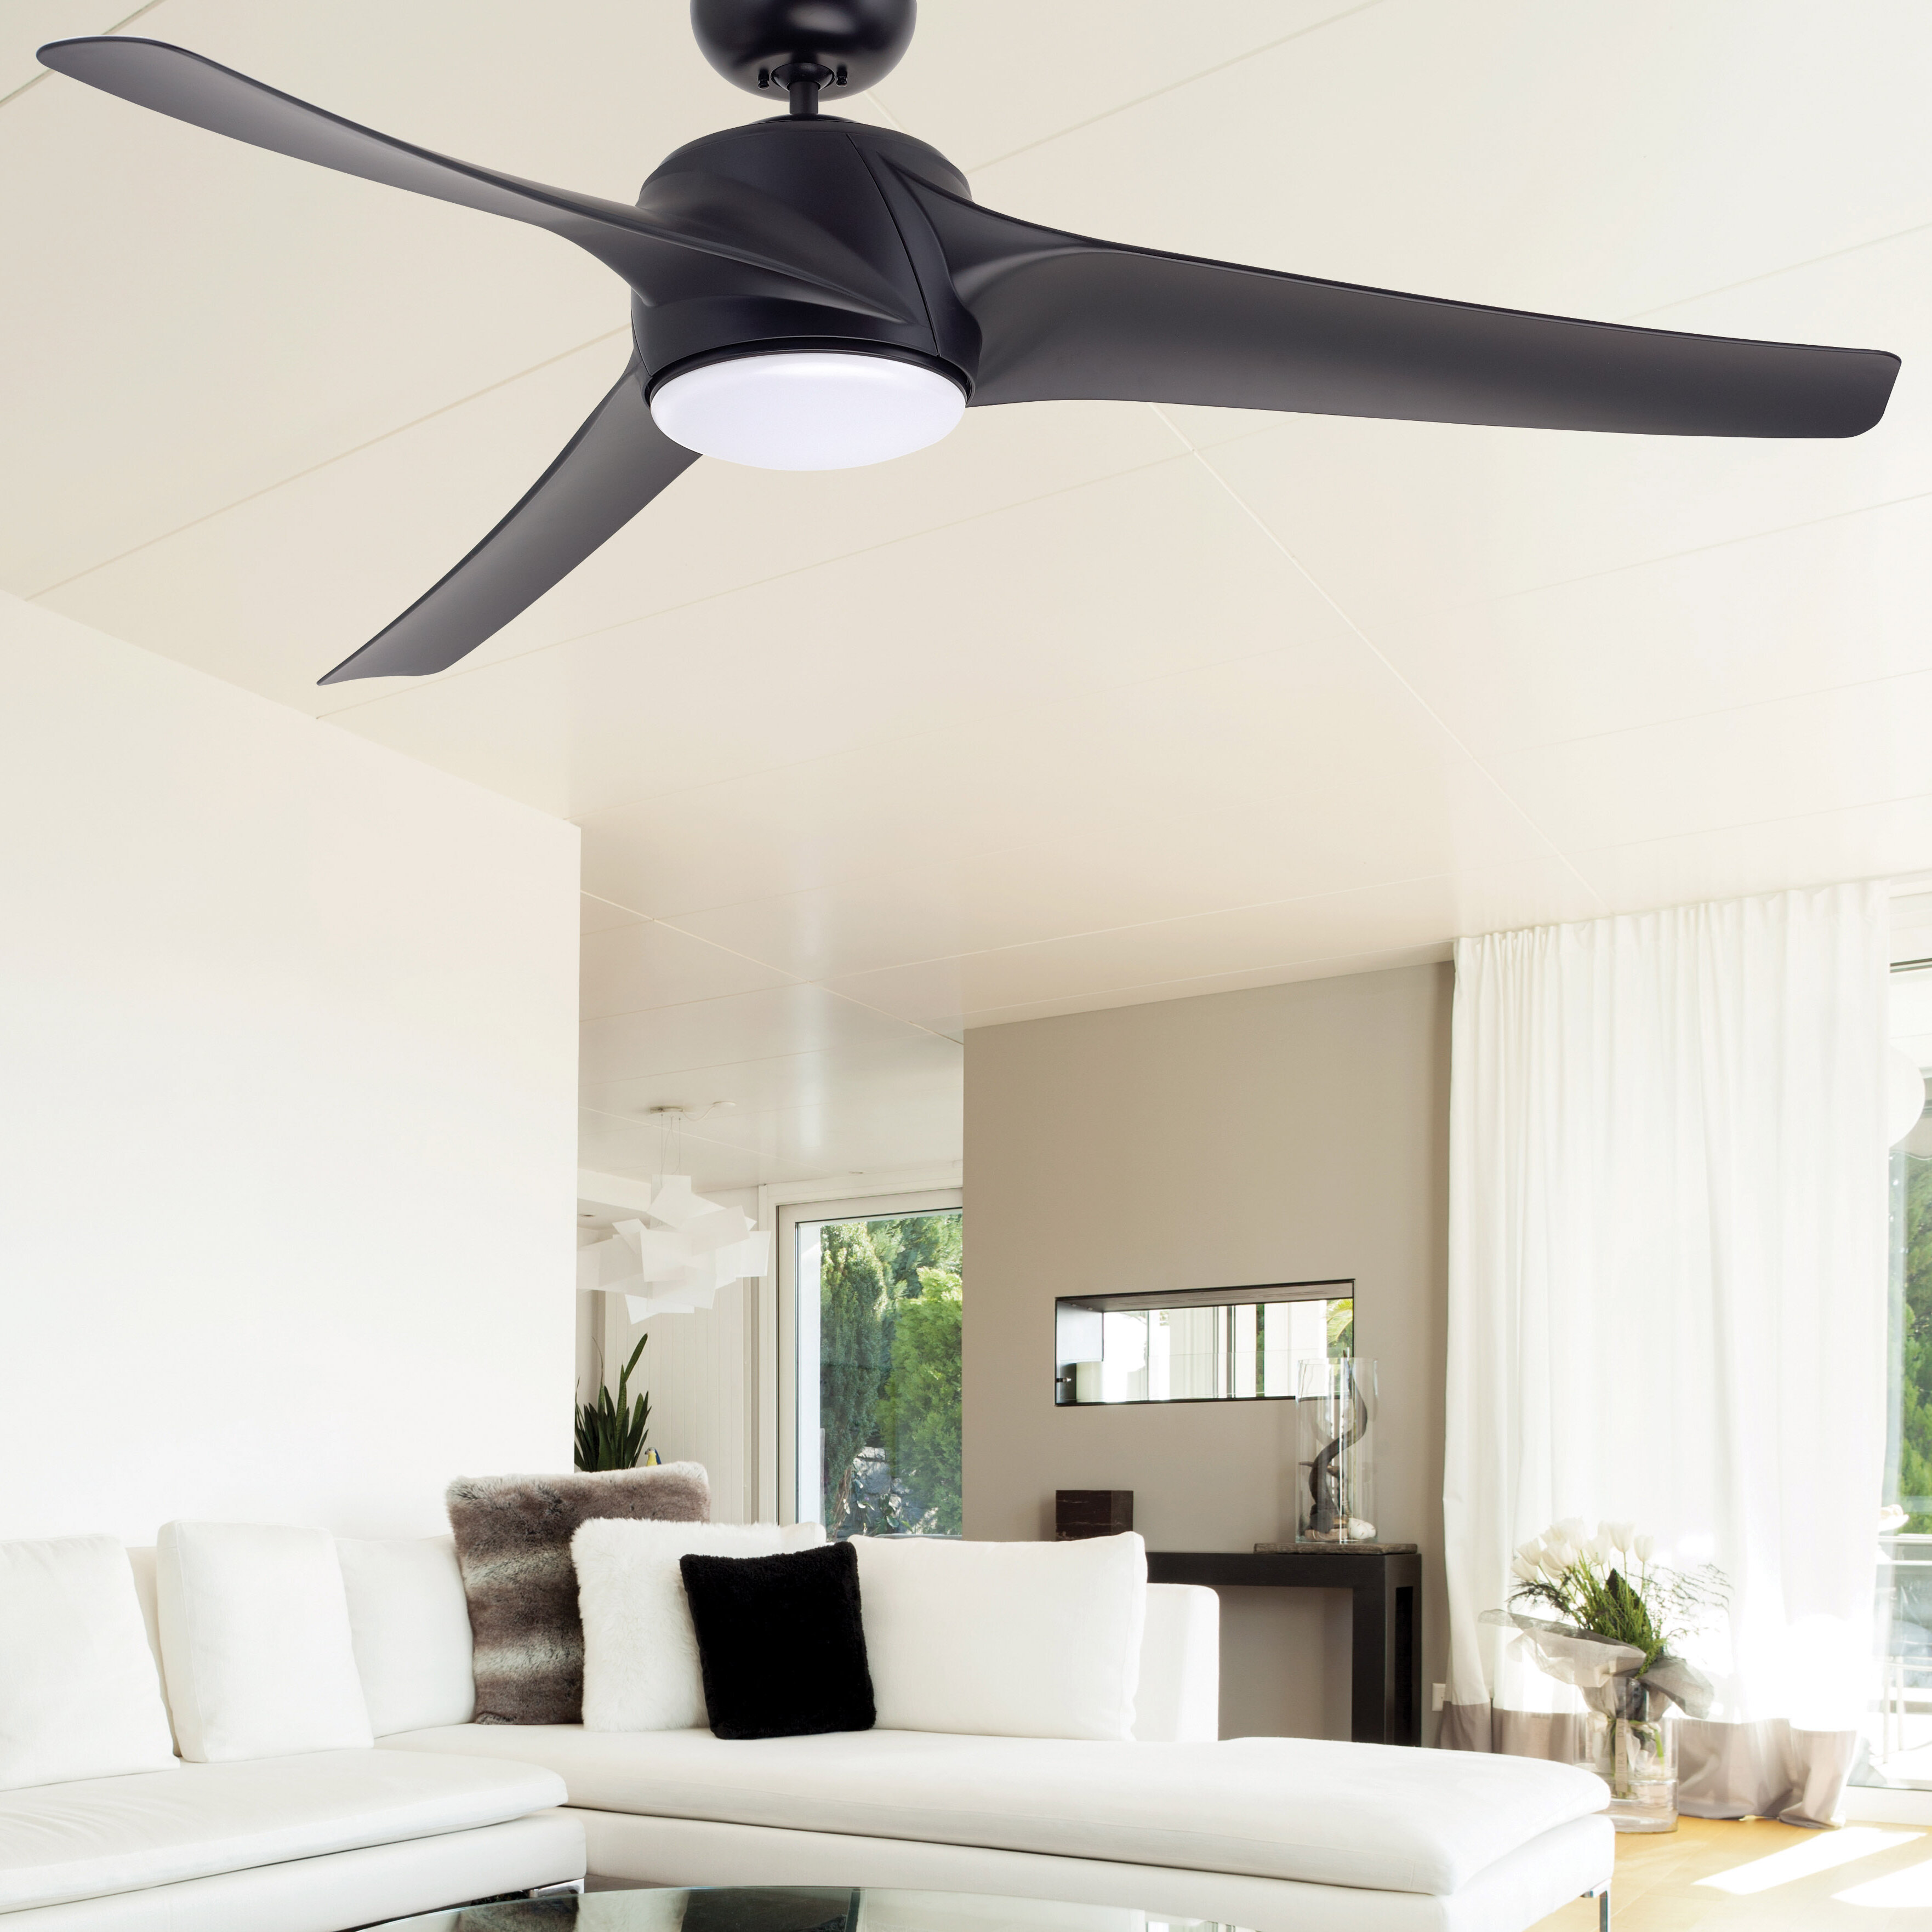 irene todaysfans walnut blades with lights products spo fan in bronze textured none ceiling blade fans shown